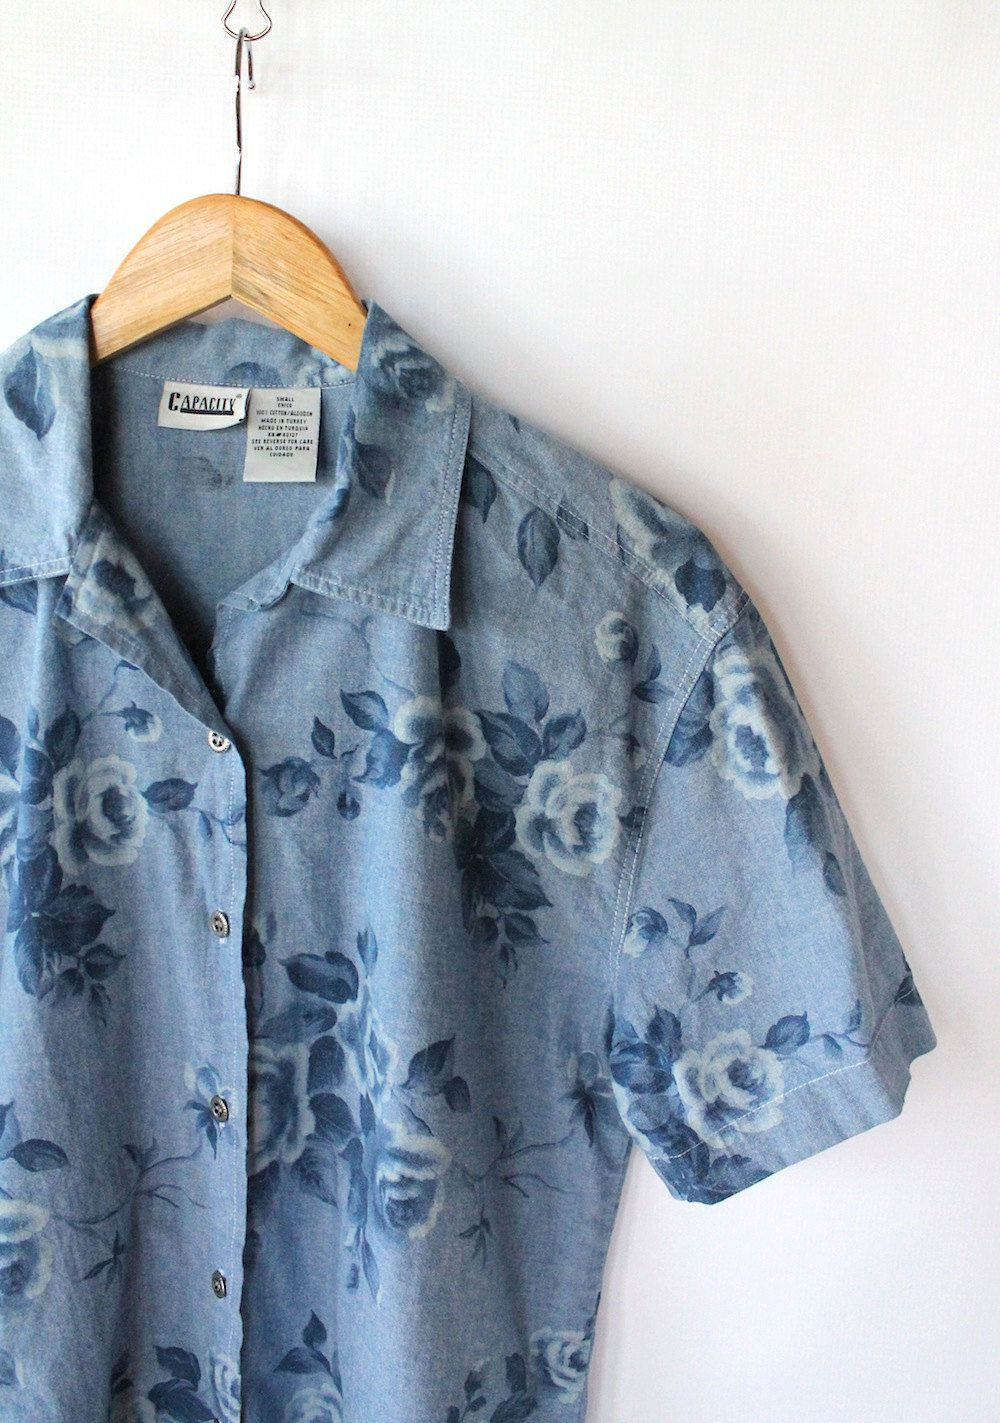 Vintage 90s Blue Floral Print Denim Button Up Blouse Women S Short Sleeve Top 32 00 Via Etsy Clothes Womens Fashion Tank Tops How To Wear